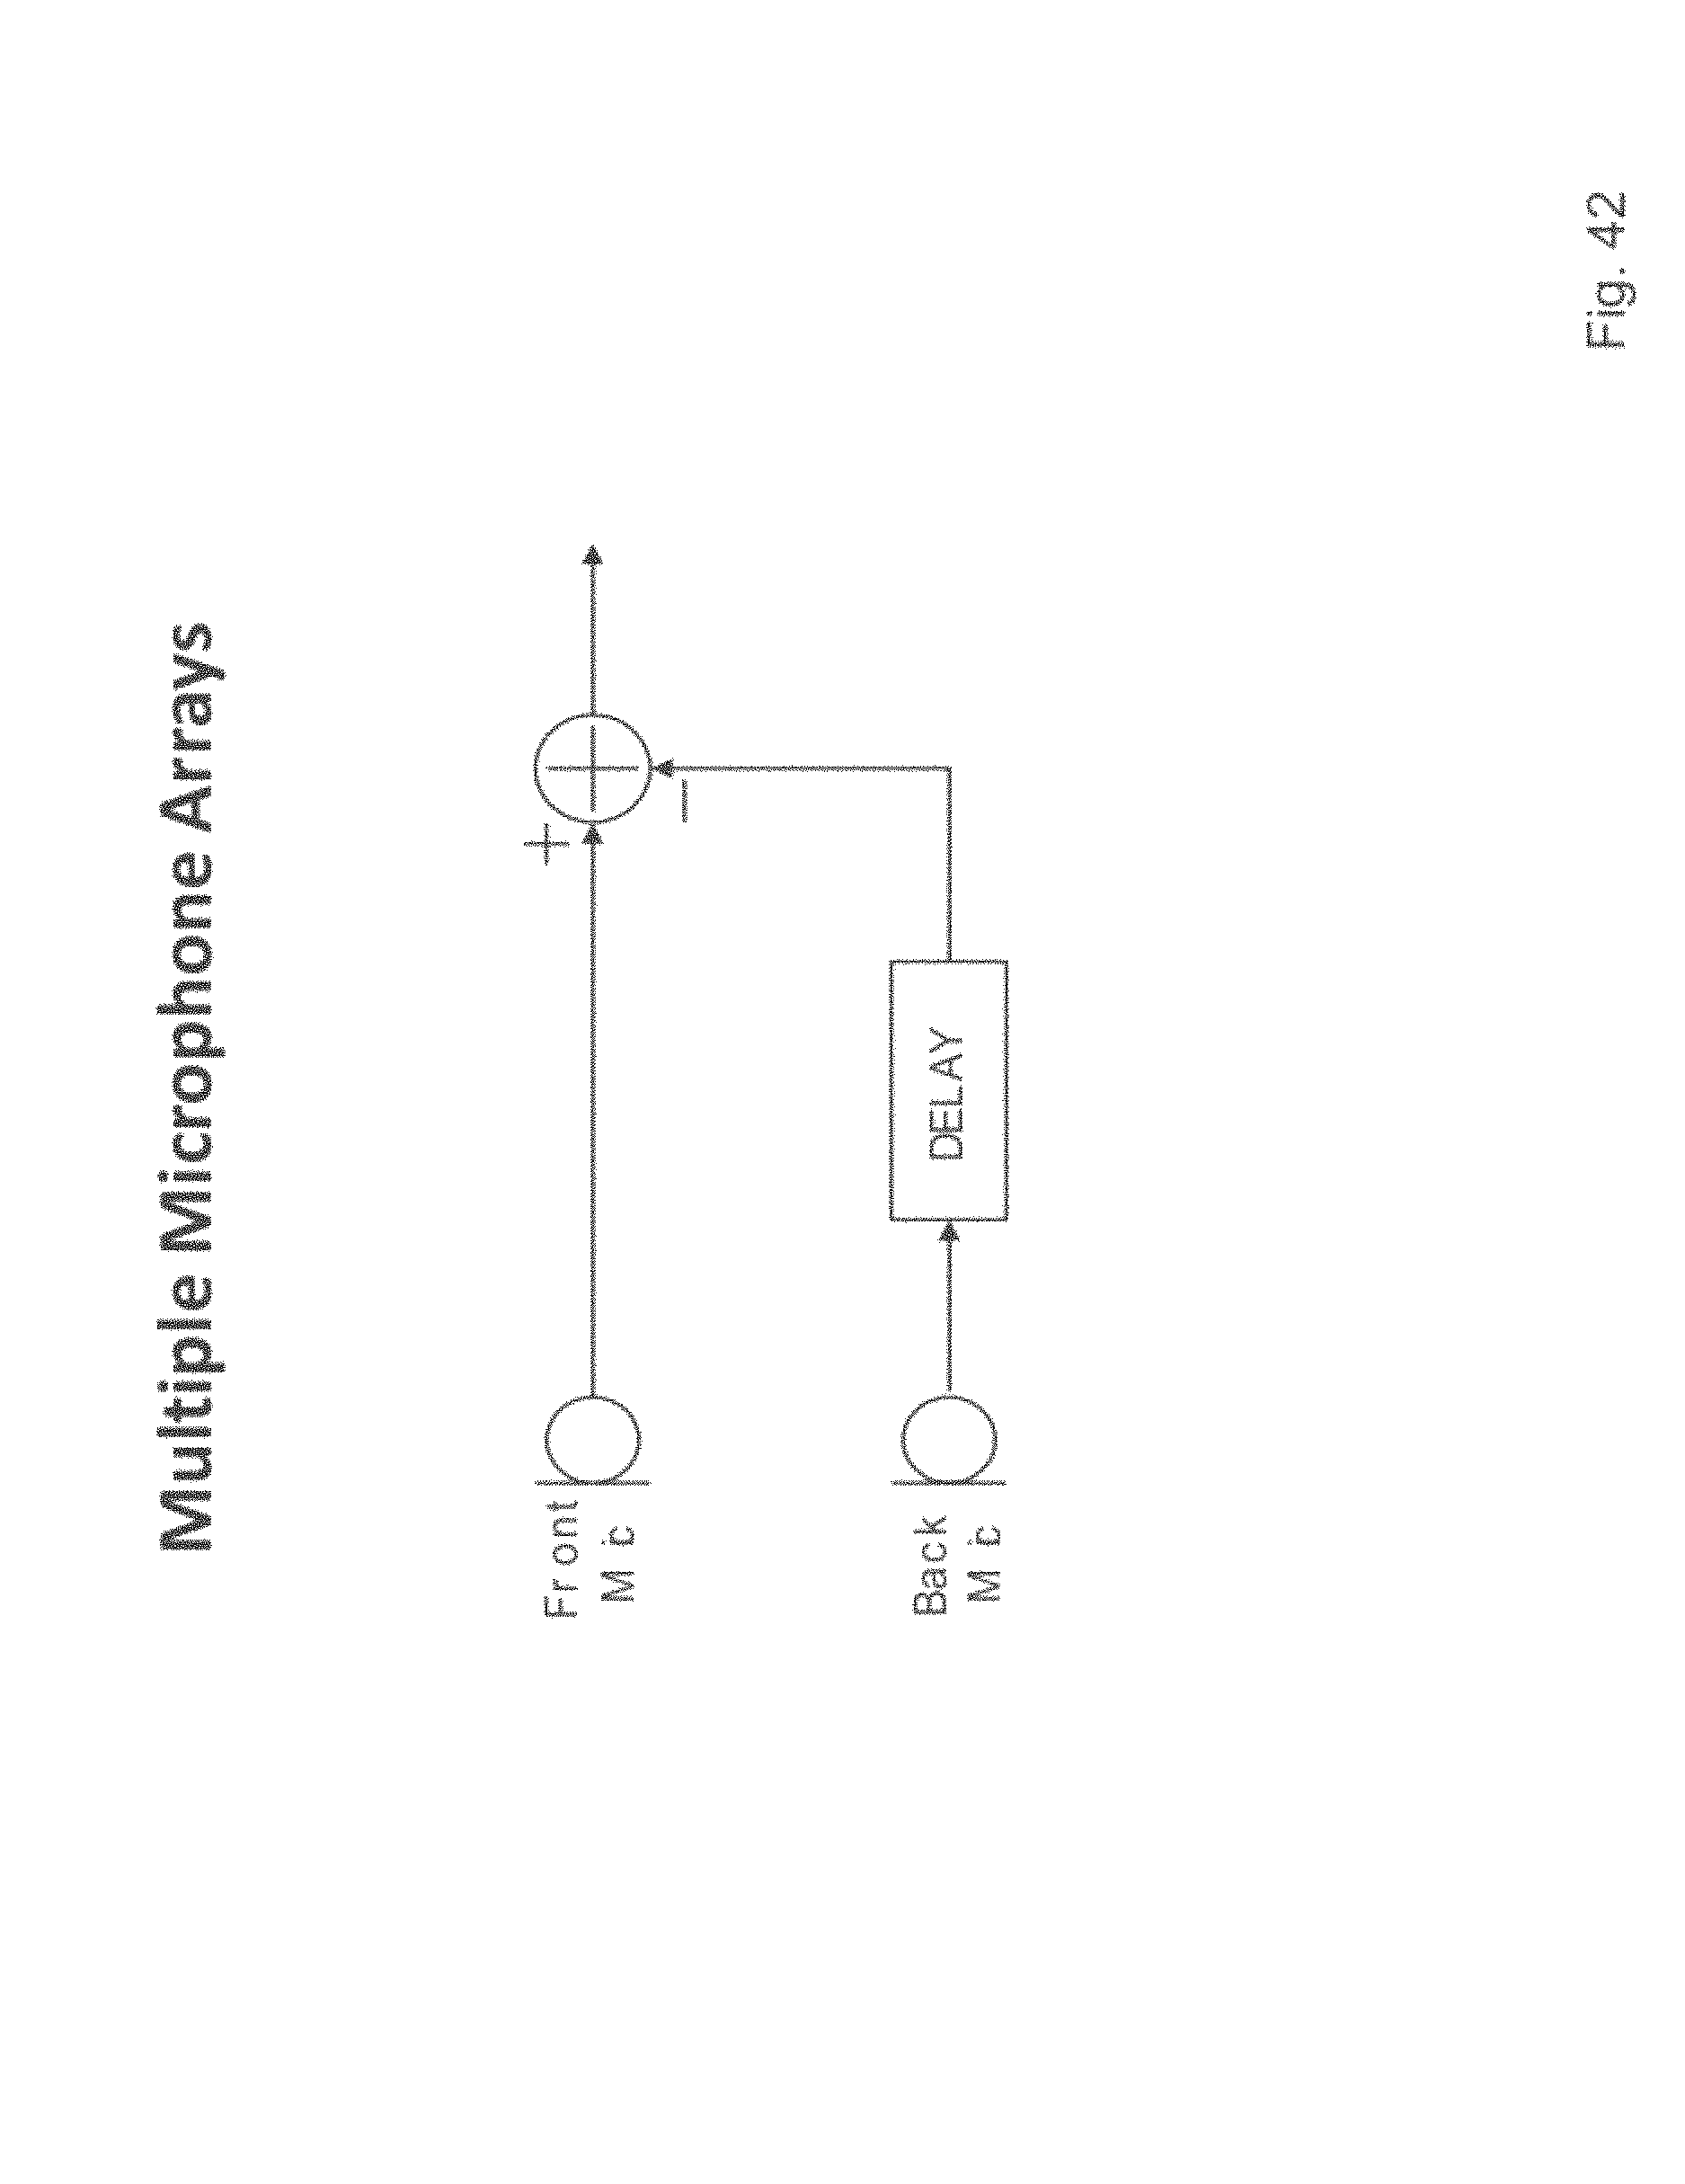 Patent Us 9759917 B2 High And Low Voltage Cutoff With Delay Alarm Circuit Diagram Images